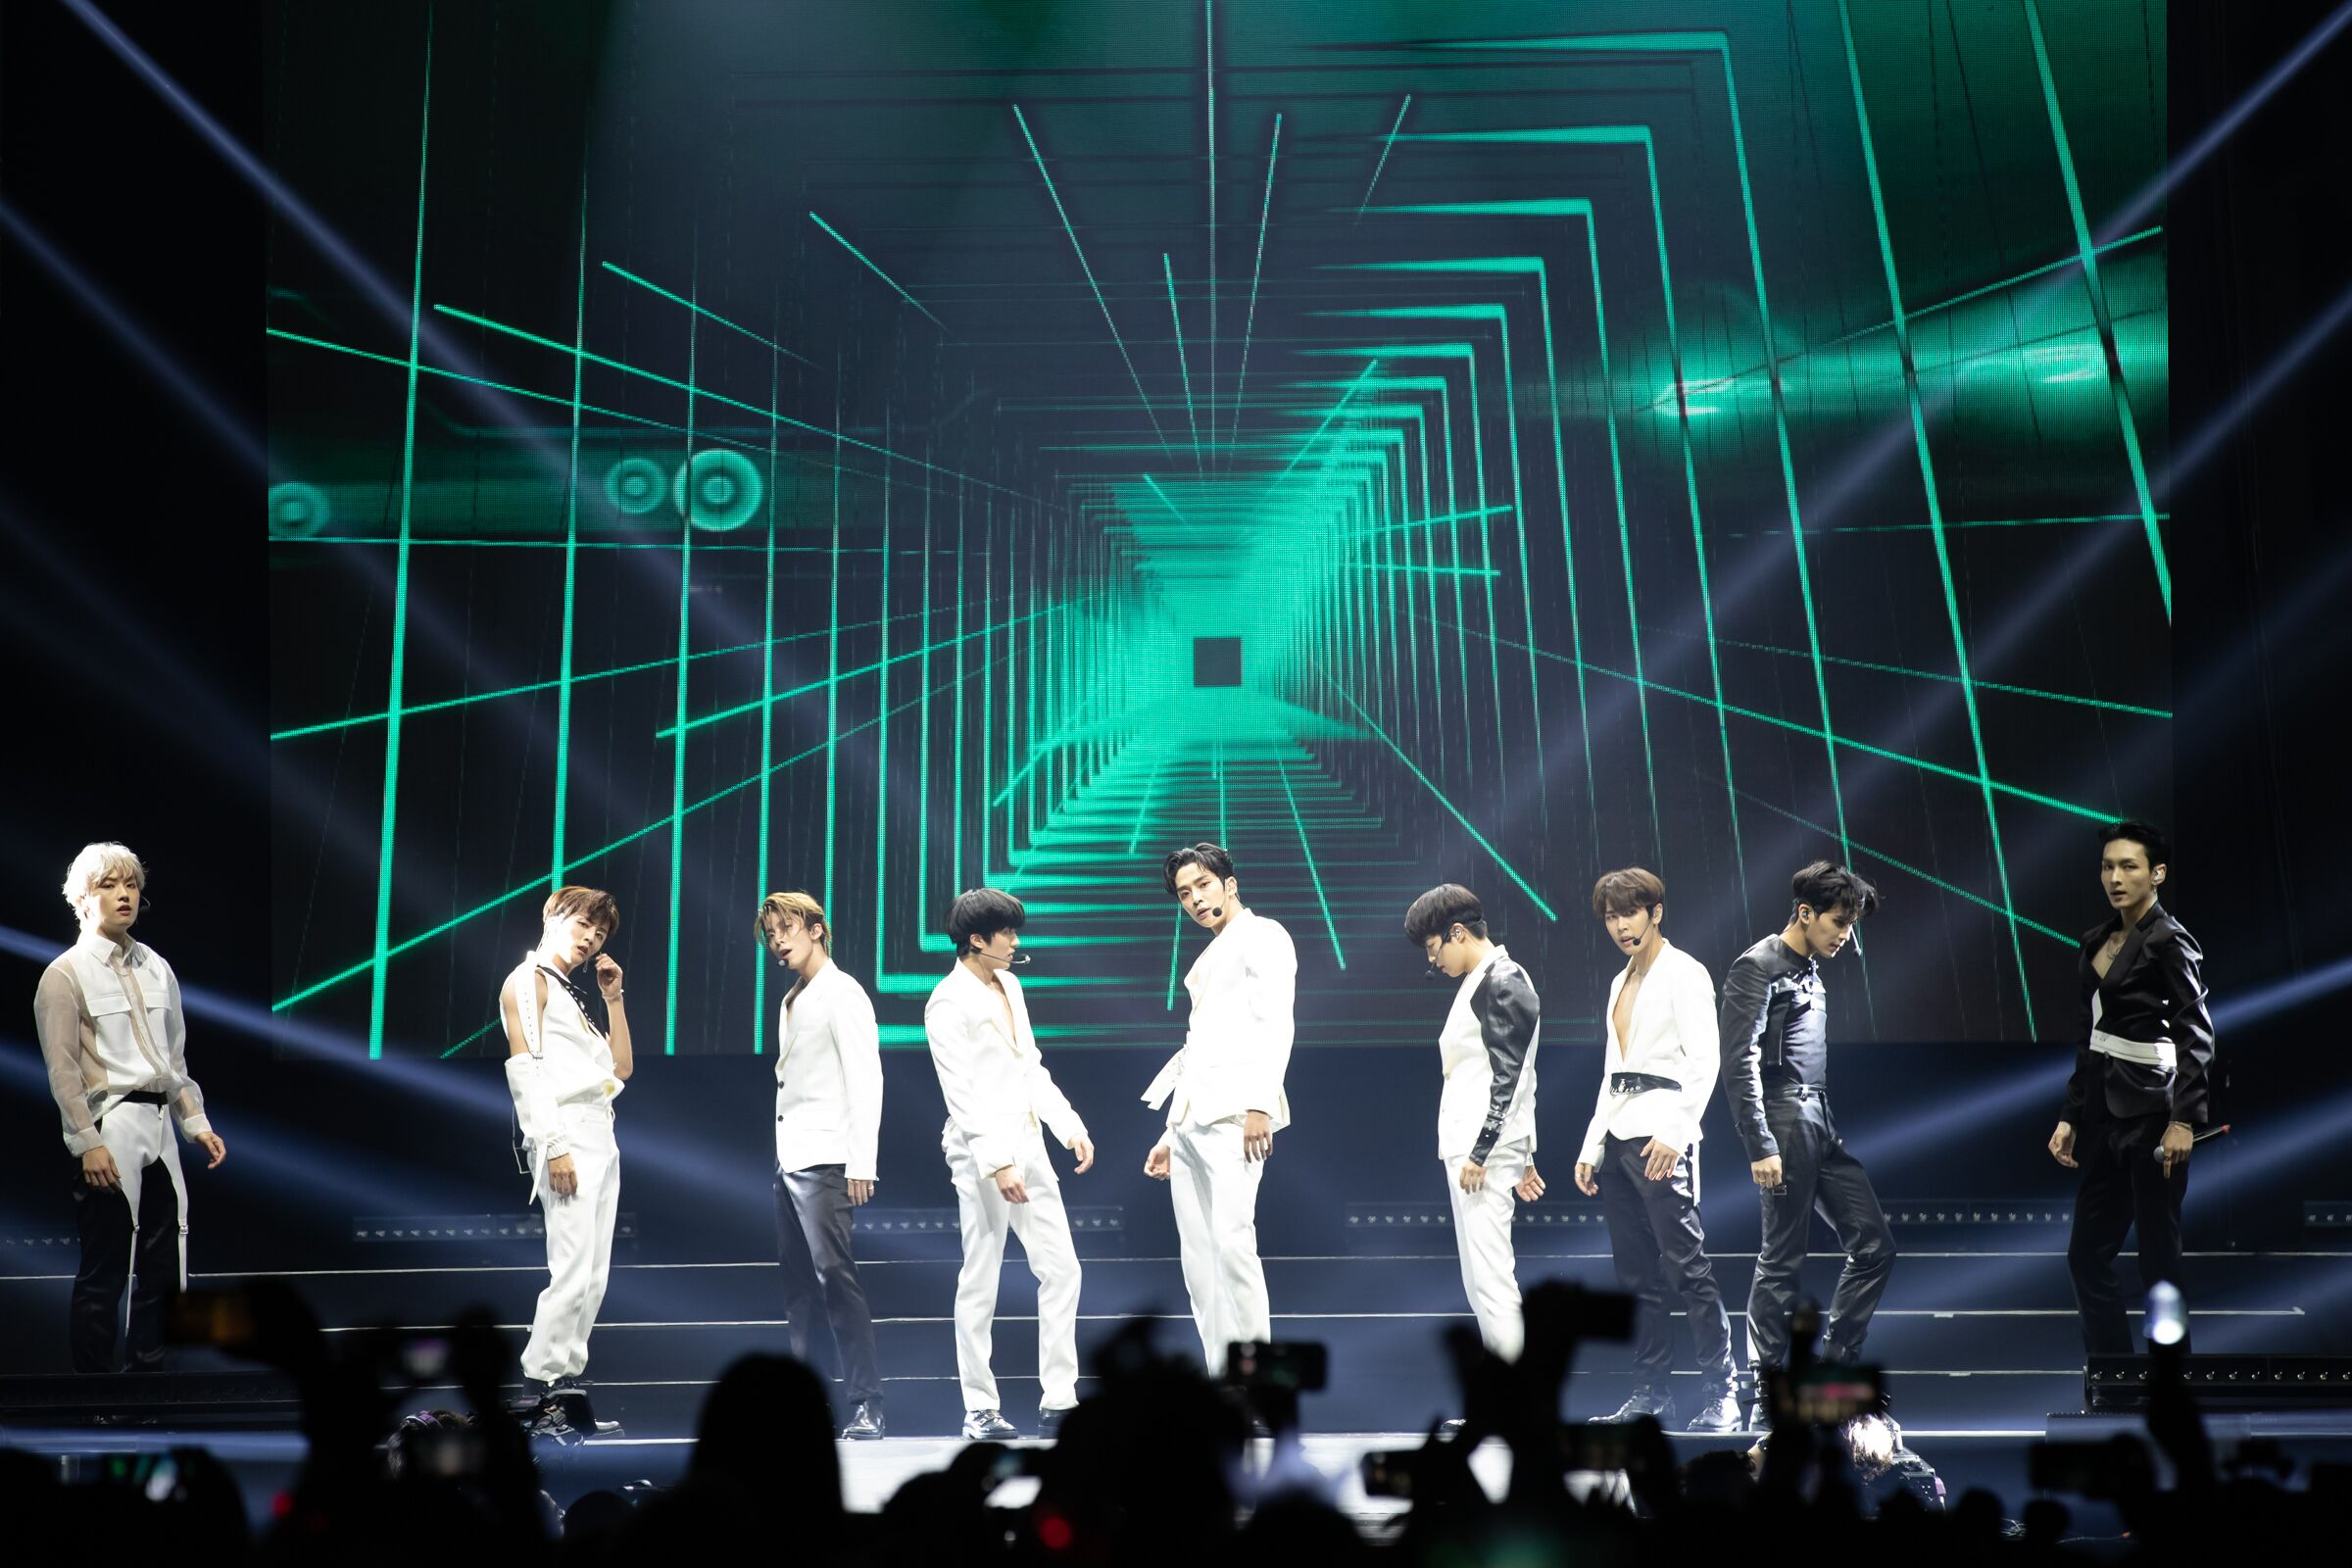 kcon, kcon 2019, kcon 2019 new york, new york, kcon 2019 new york photos, kcon the boyz, the boyz, fromis 9, fromis 9 profile, sf9, sf9 facts, sf9 members, verivery, verivery profile,